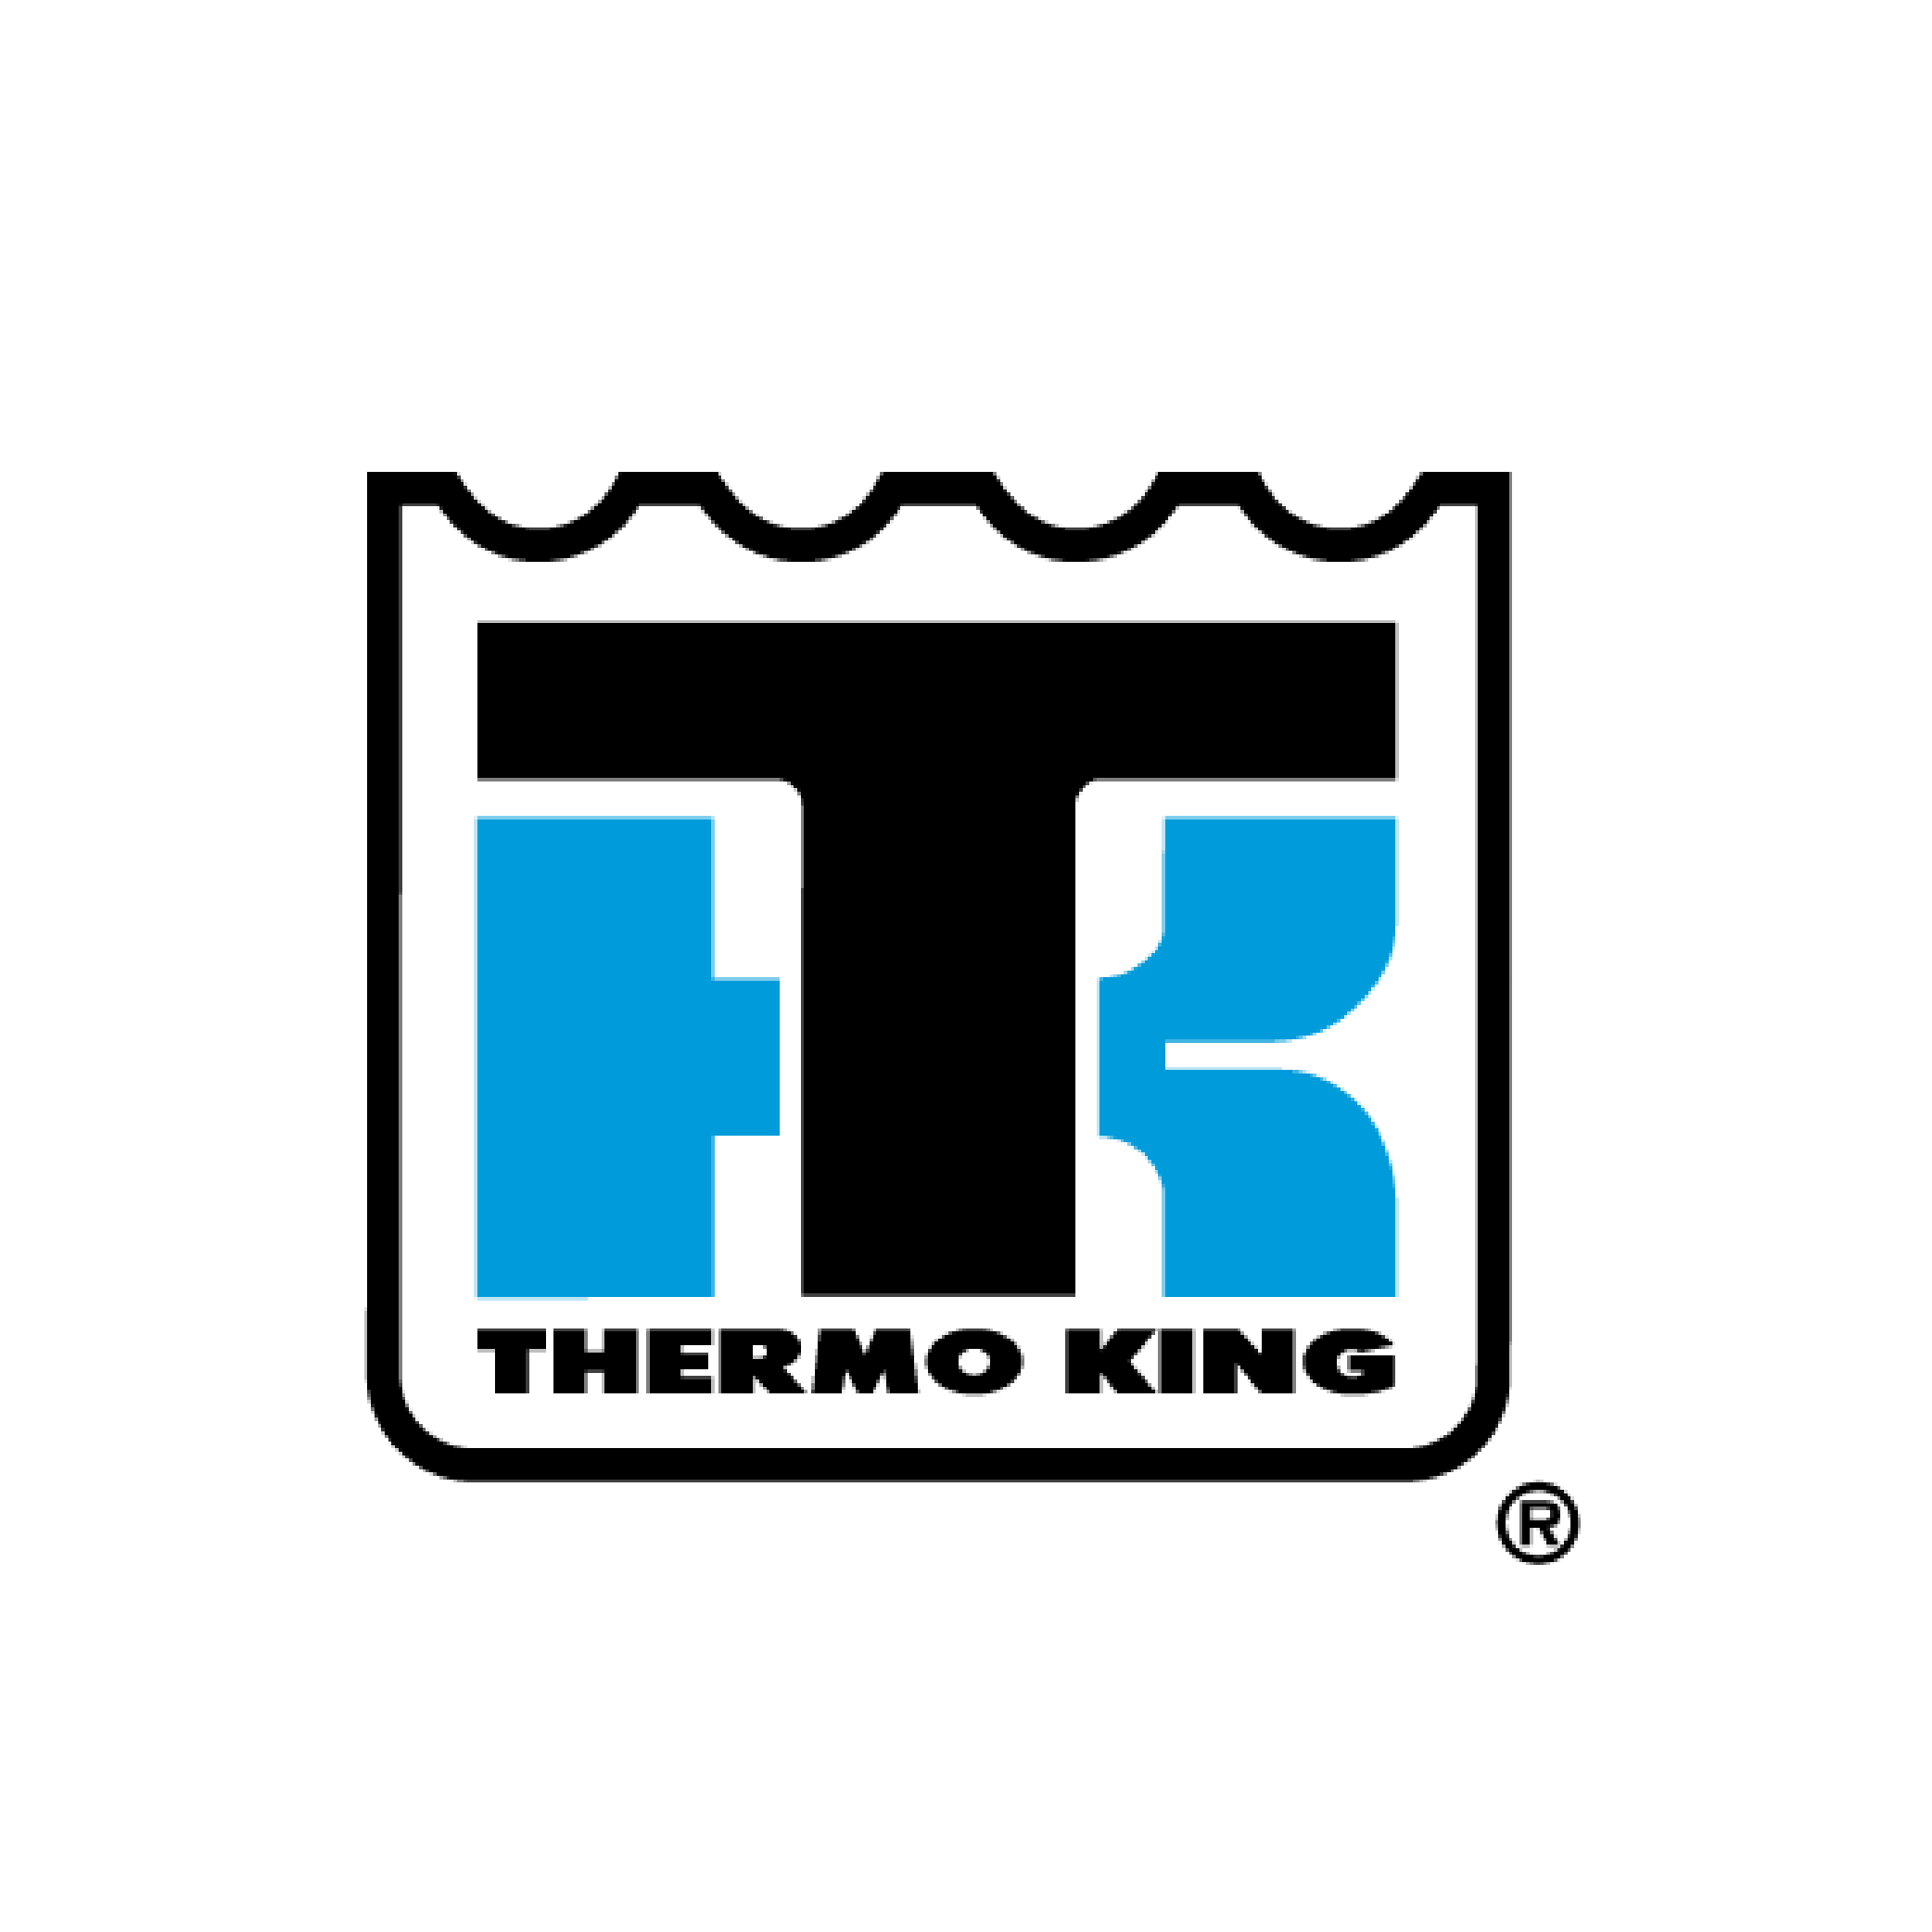 Copy of Thermo King